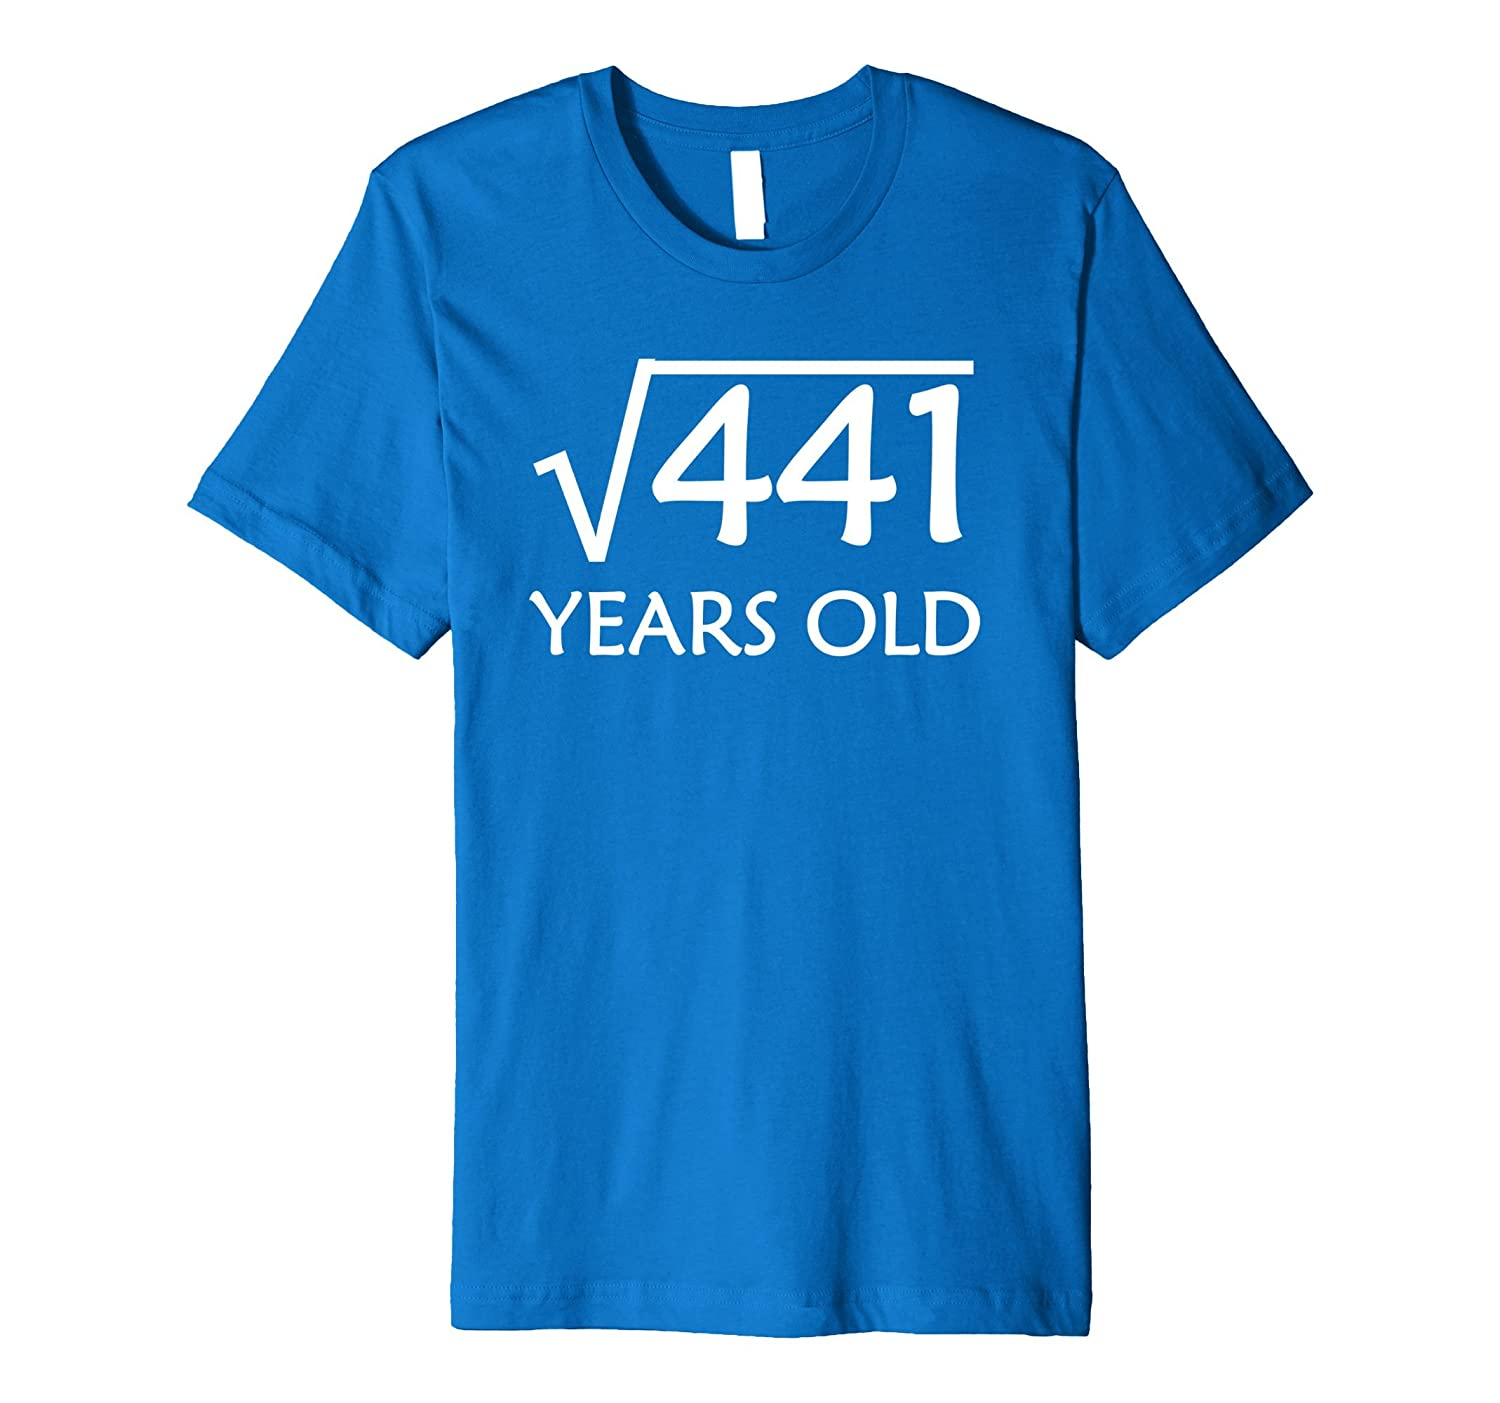 21st Birthday T-Shirt  Square Root of 441 – 21 Years Old